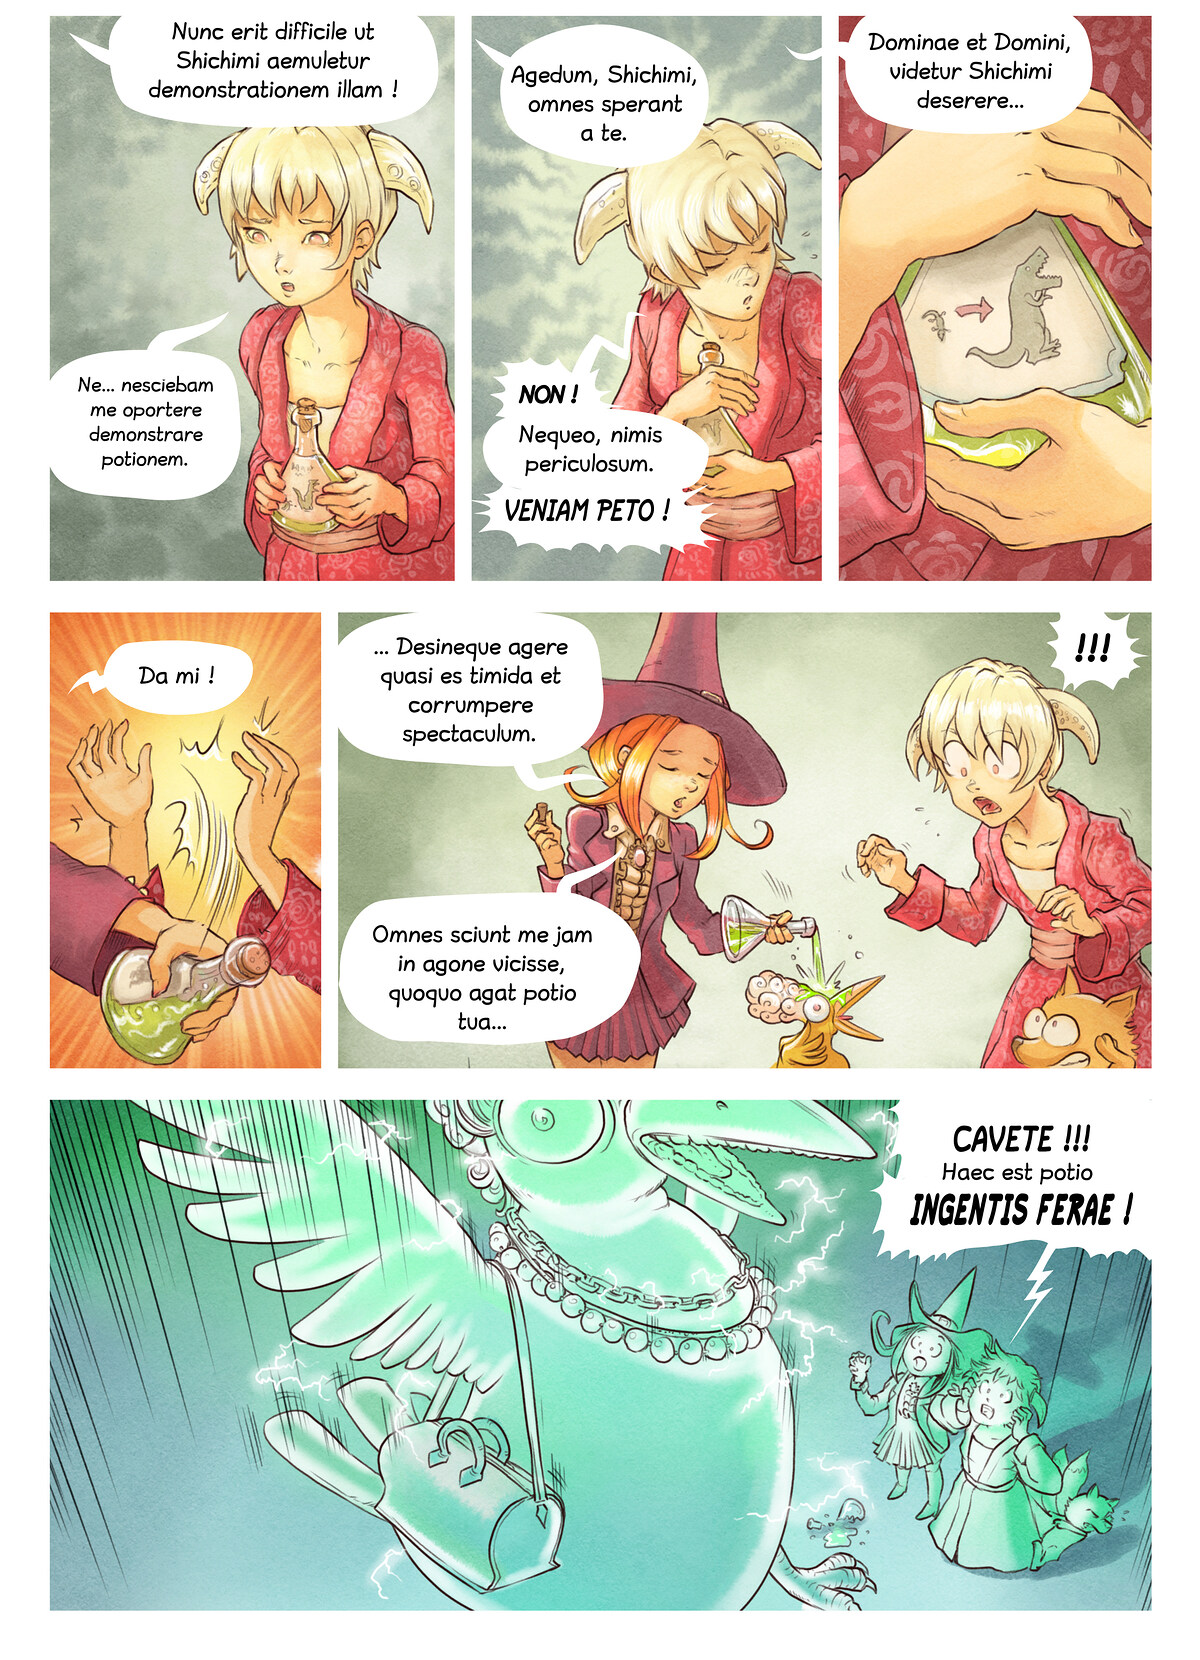 A webcomic page of Pepper&Carrot, episode 6 [la], page 6